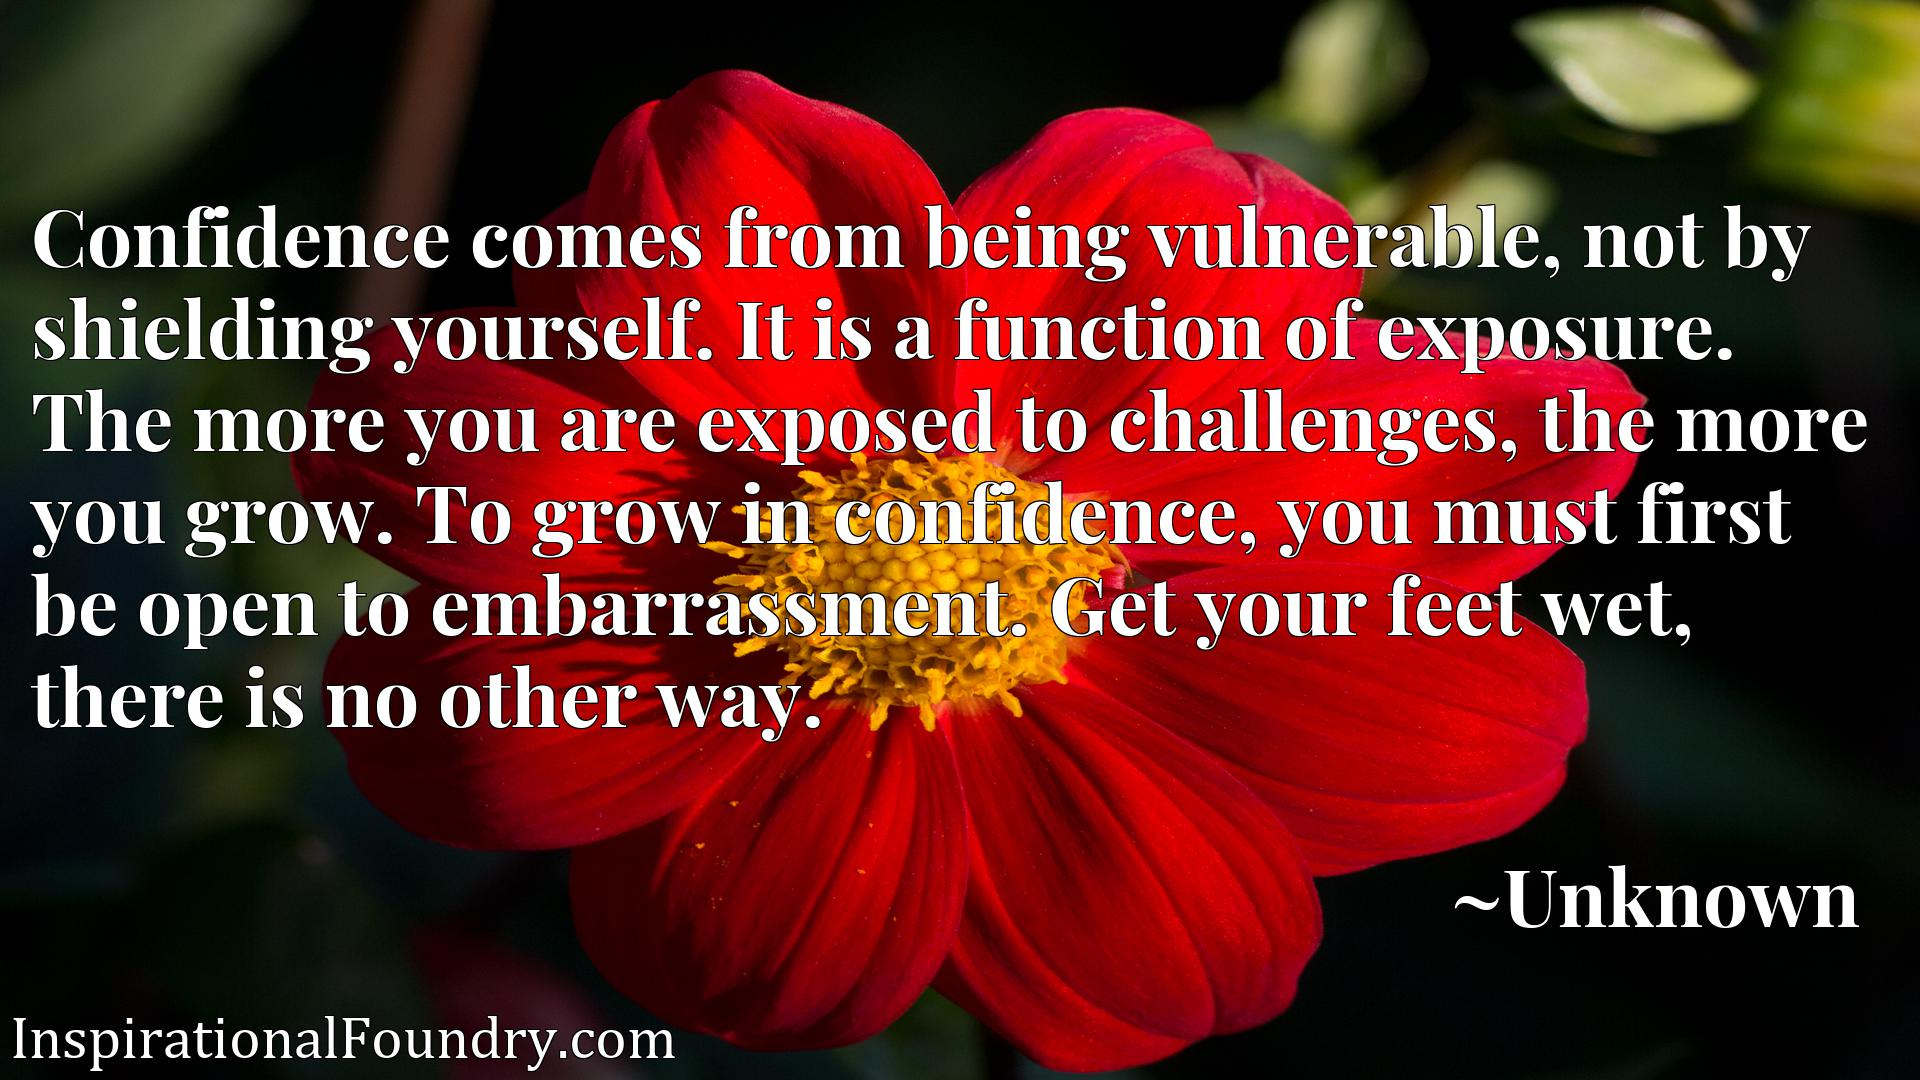 Confidence comes from being vulnerable, not by shielding yourself. It is a function of exposure. The more you are exposed to challenges, the more you grow. To grow in confidence, you must first be open to embarrassment. Get your feet wet, there is no other way.